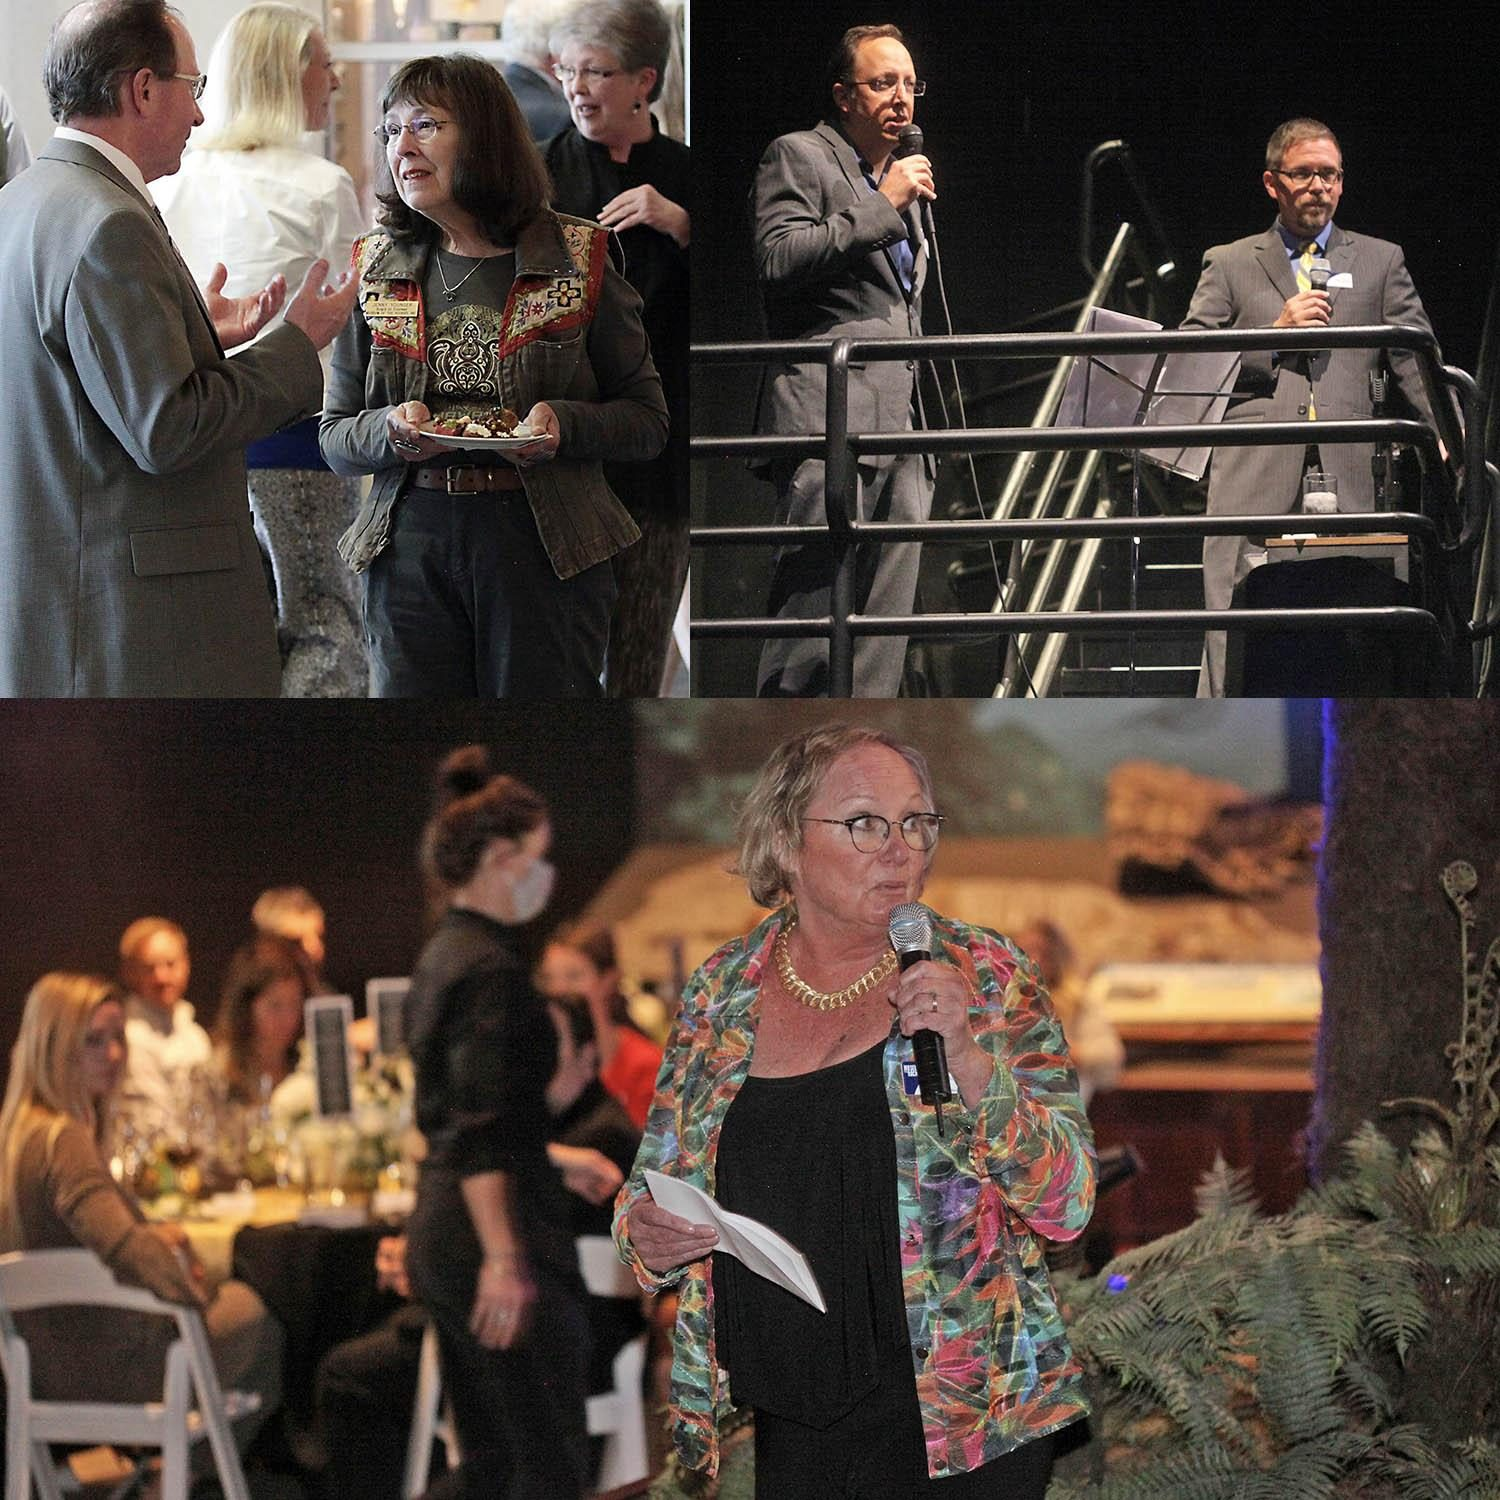 A photo collage numerous board members speaking or networking to raising money for the museum.